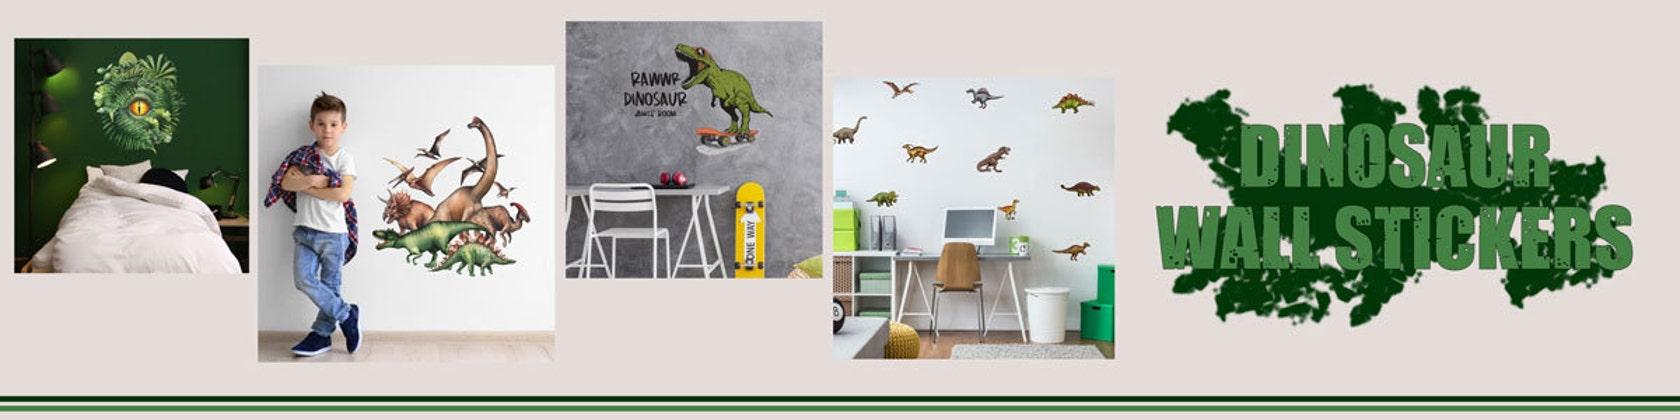 Gorgeous High Quality Wall Stickers And Gifts By Stickerscape